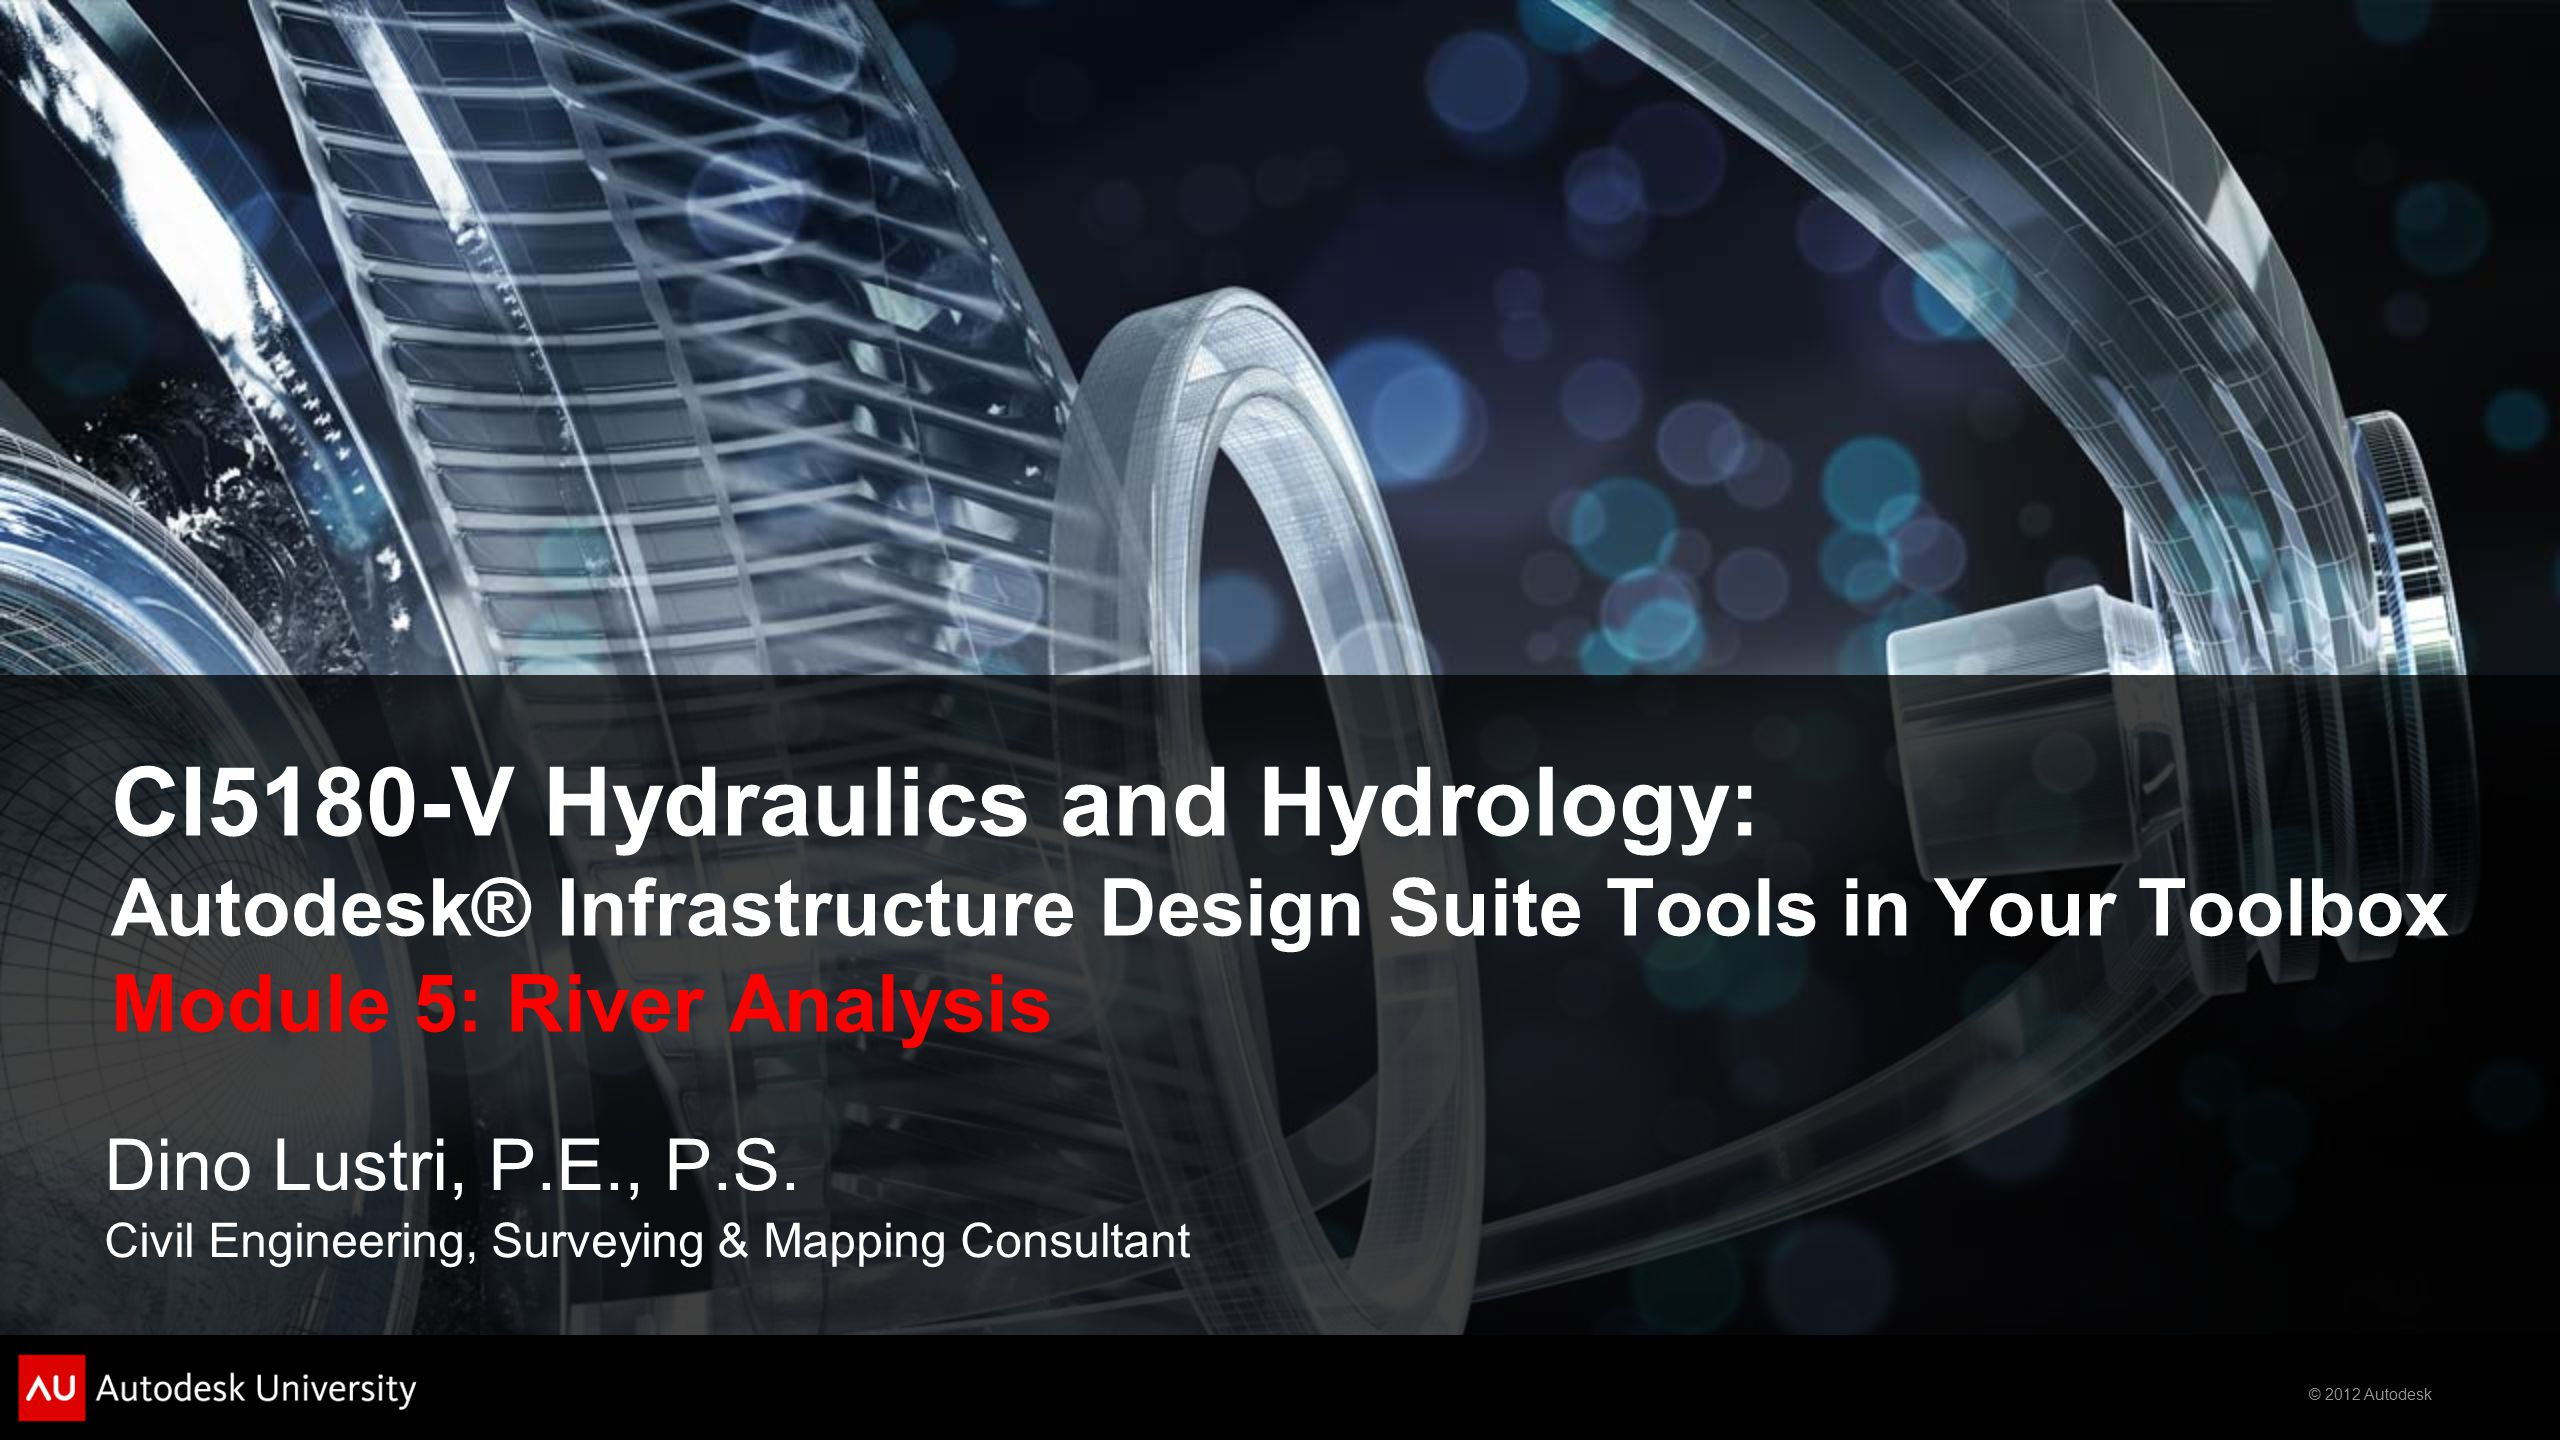 © 2012 Autodesk CI5180-V Hydraulics and Hydrology: Autodesk® Infrastructure Design Suite Tools in Your Toolbox Module 5: River Analysis Dino Lustri, P.E., P.S.